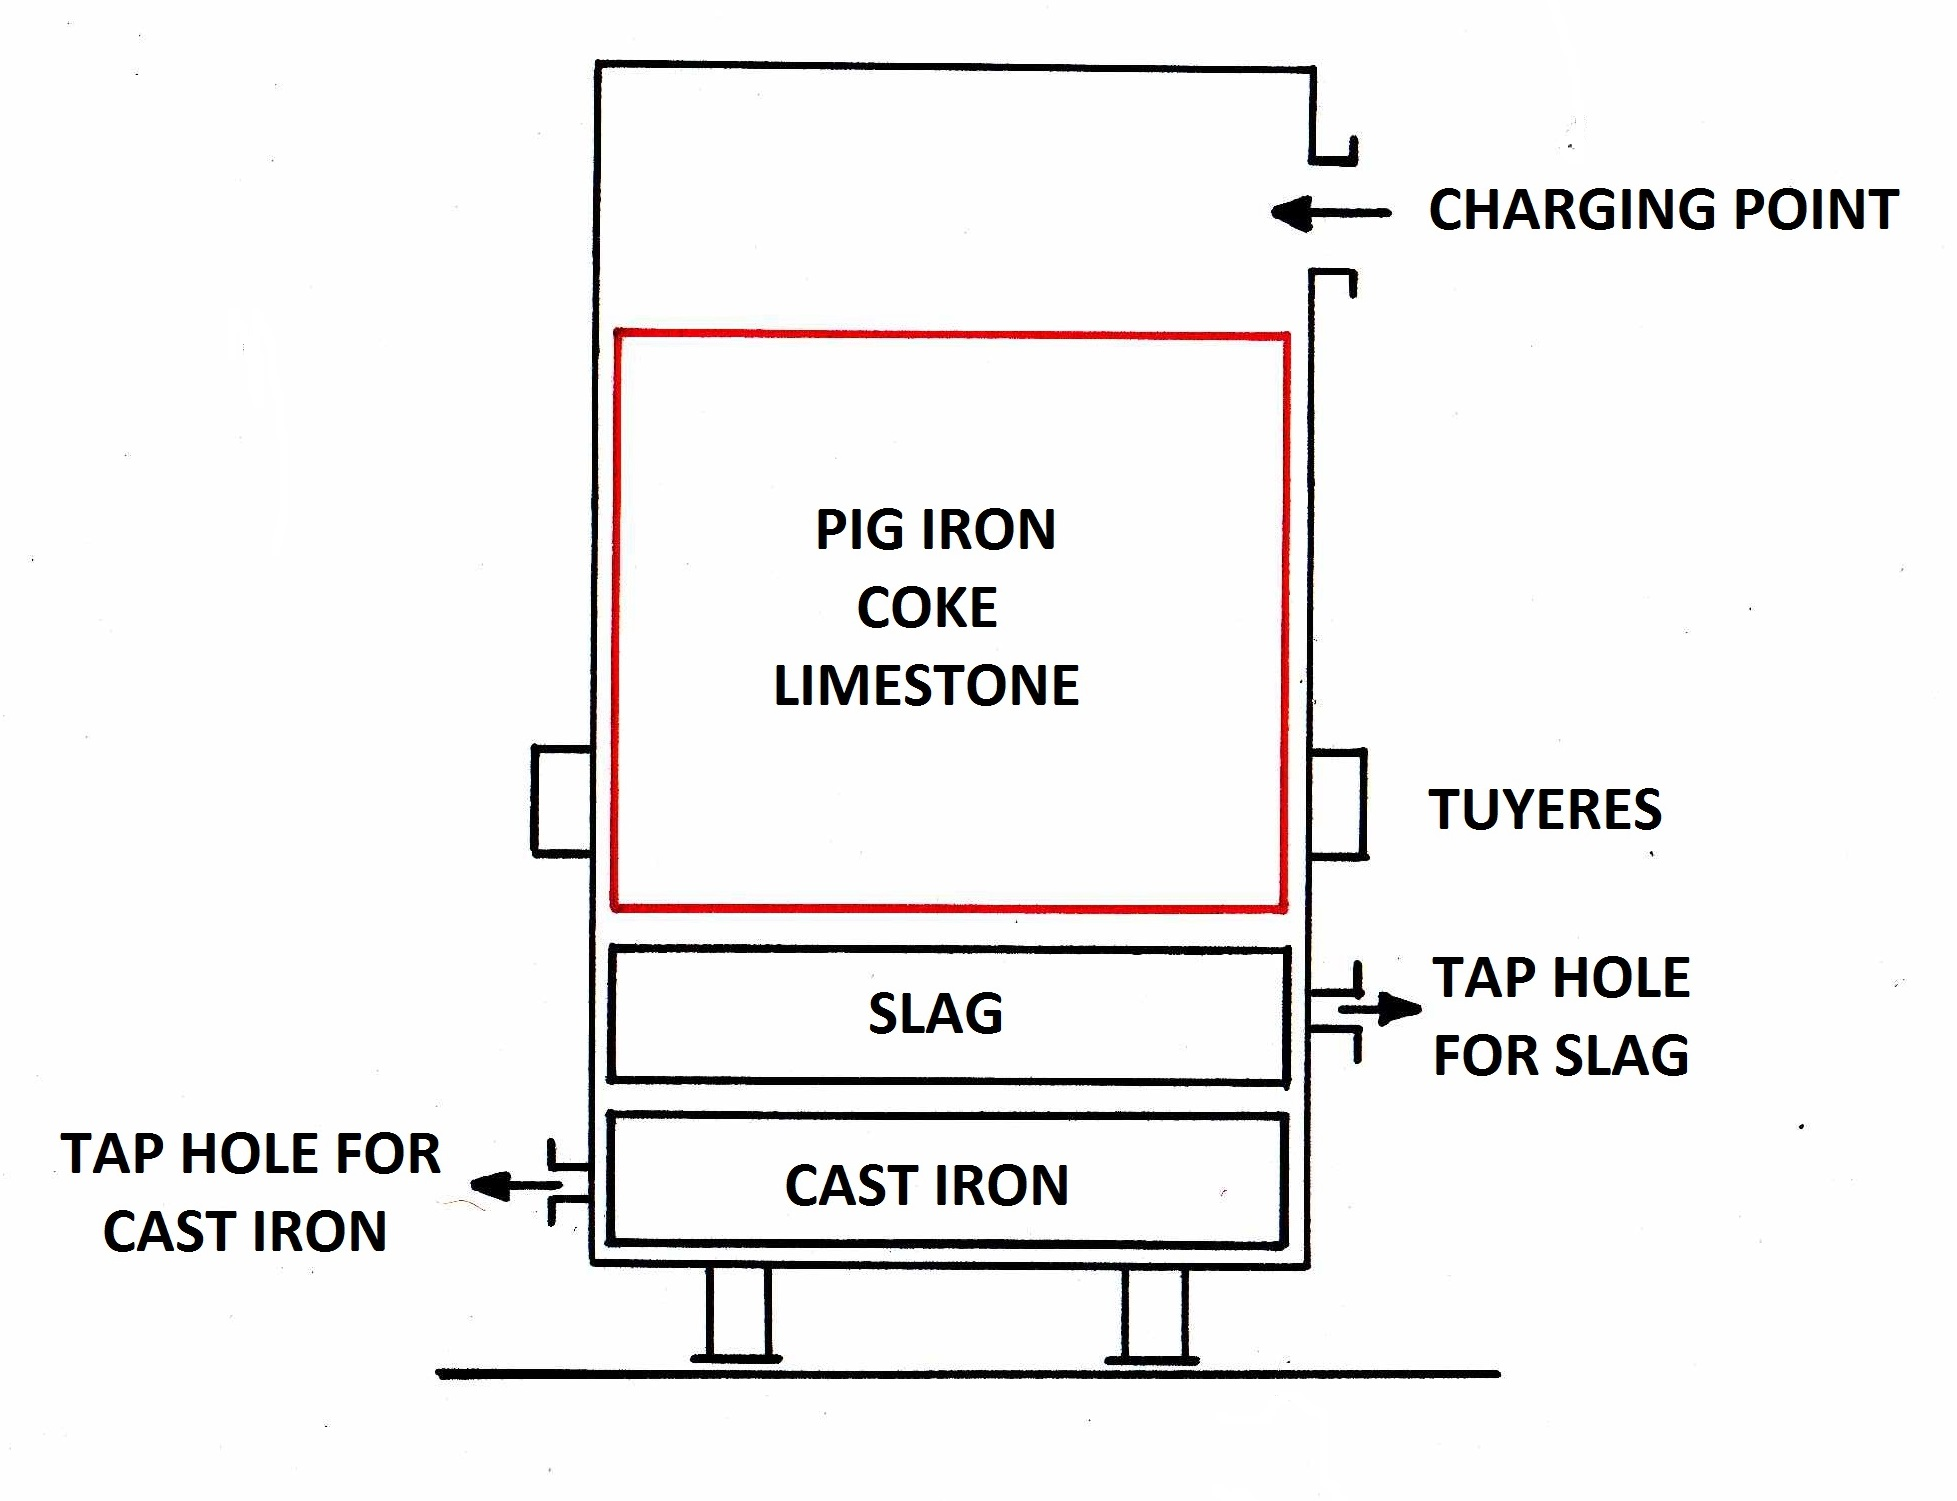 Basic Thermostat Wiring Diagram : Basic thermostat wiring diagram wire